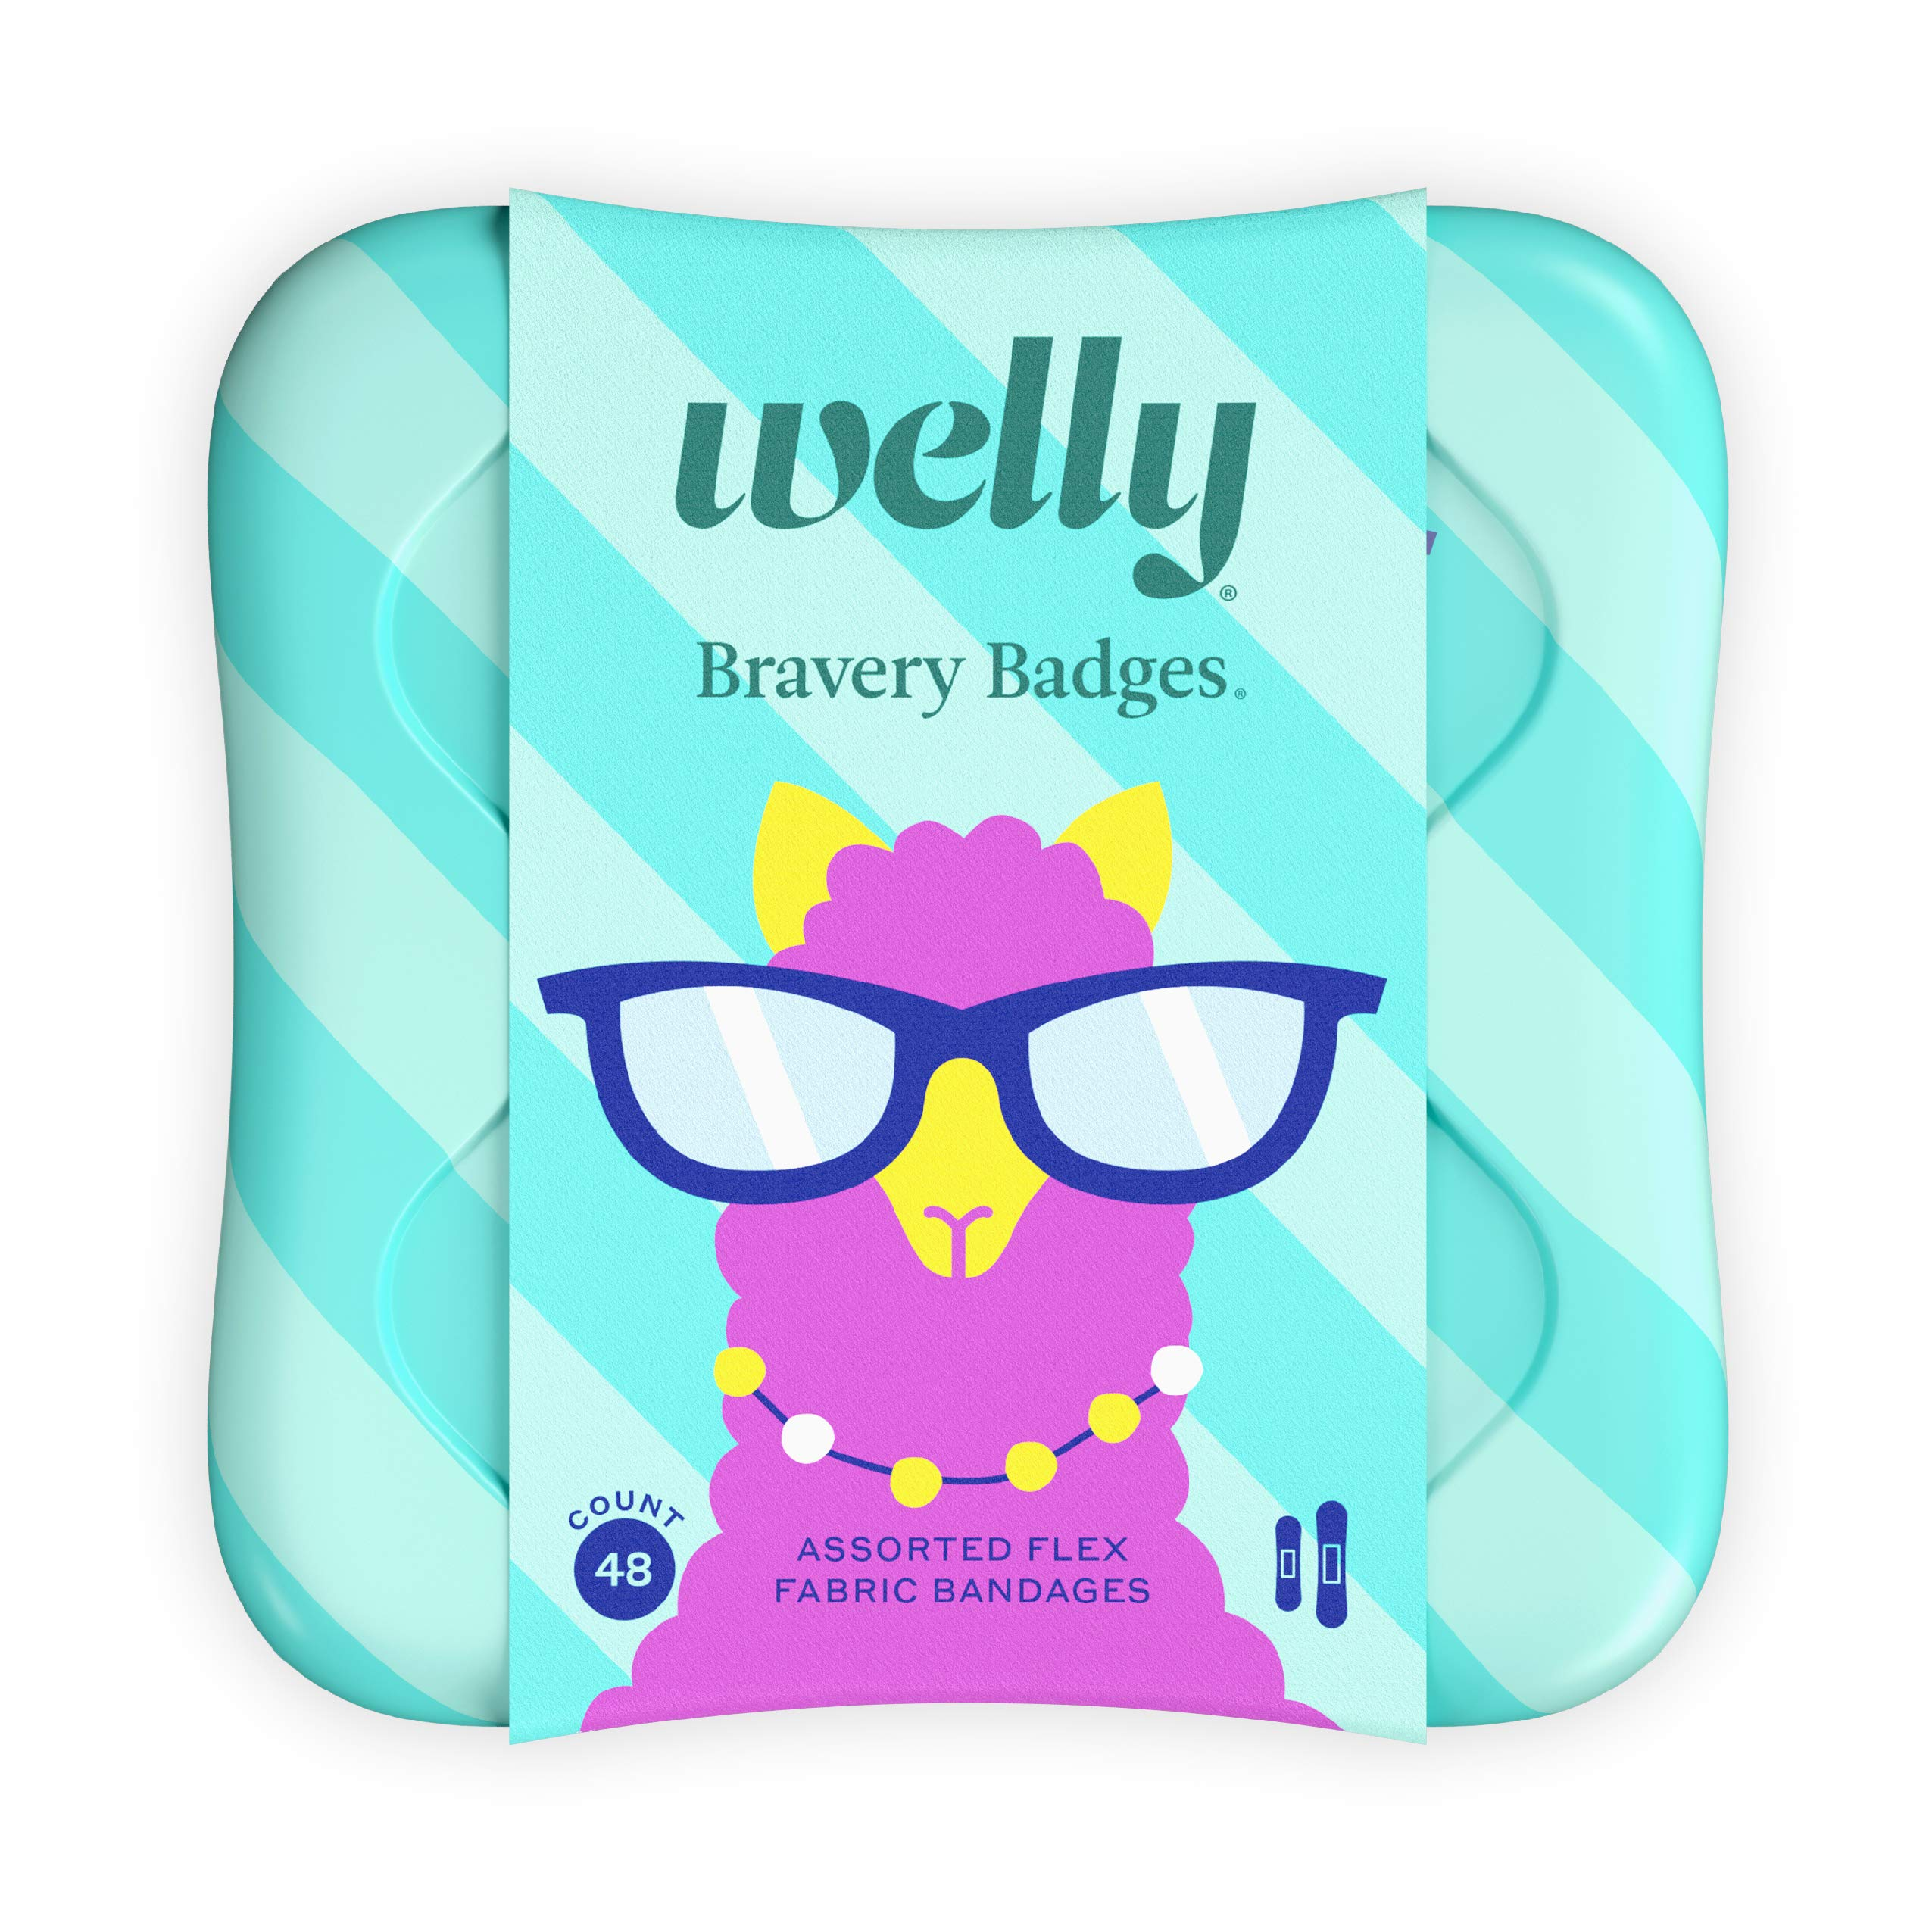 Welly Bandages - Bravery Badges, Flexible Fabric, Adhesive, Standard Shapes, Peculiar Pets - Llama, Sloth, Narwhal Patterns - 48 Count